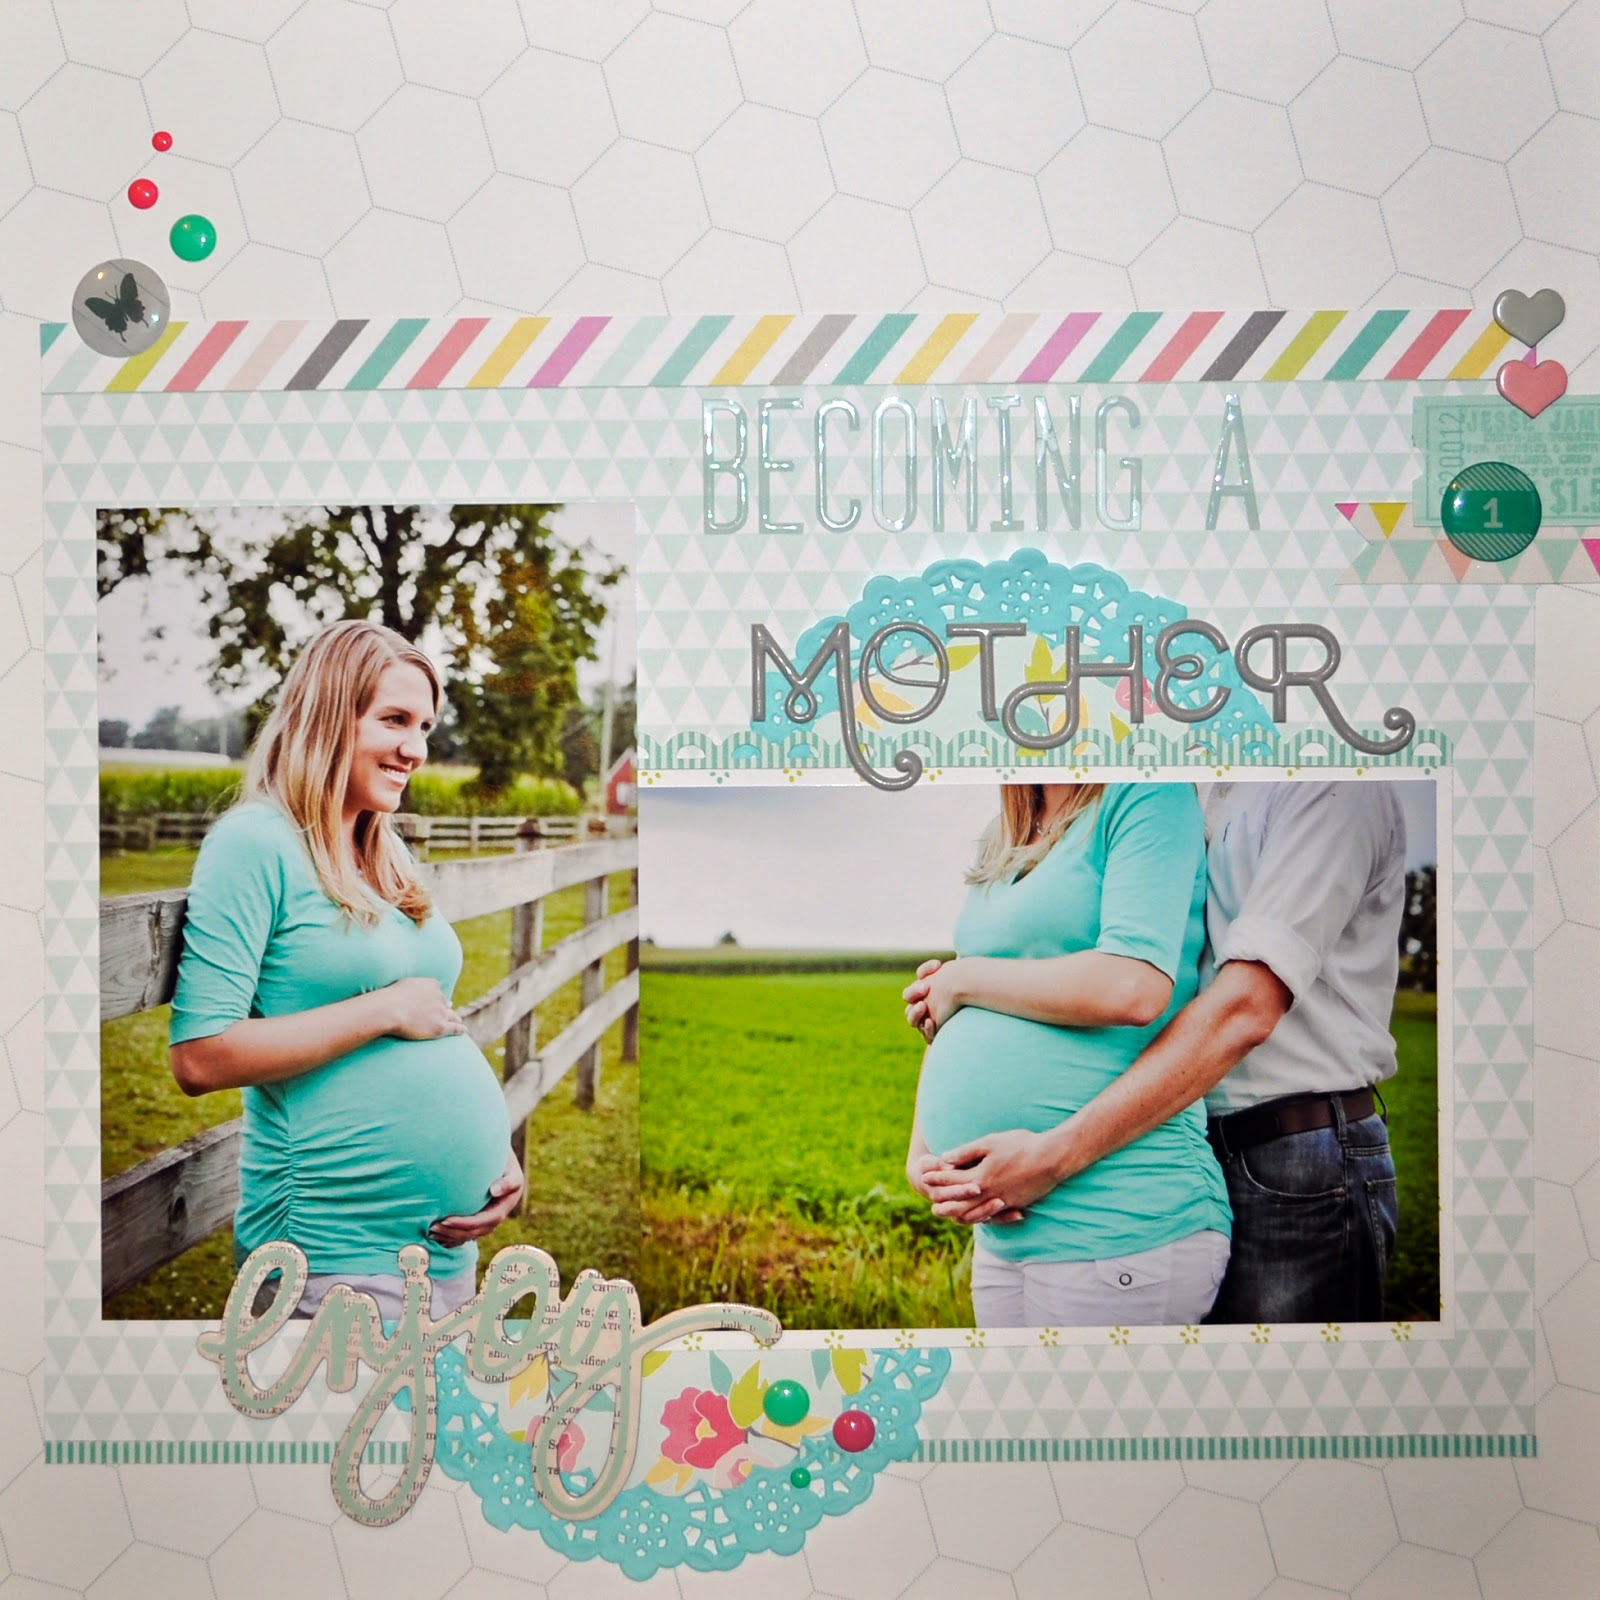 12x12 scrapbook page example inspiration unisex surprise baby pregnancy pregnant expecting boy girl due date banner bunting maternity nursery belly bump white chicken wire vintage rustic fence bright blue aqua teal pink grey becoming a mother mom parent doily doilies floral flowers stripes enamel dots first child butterfly